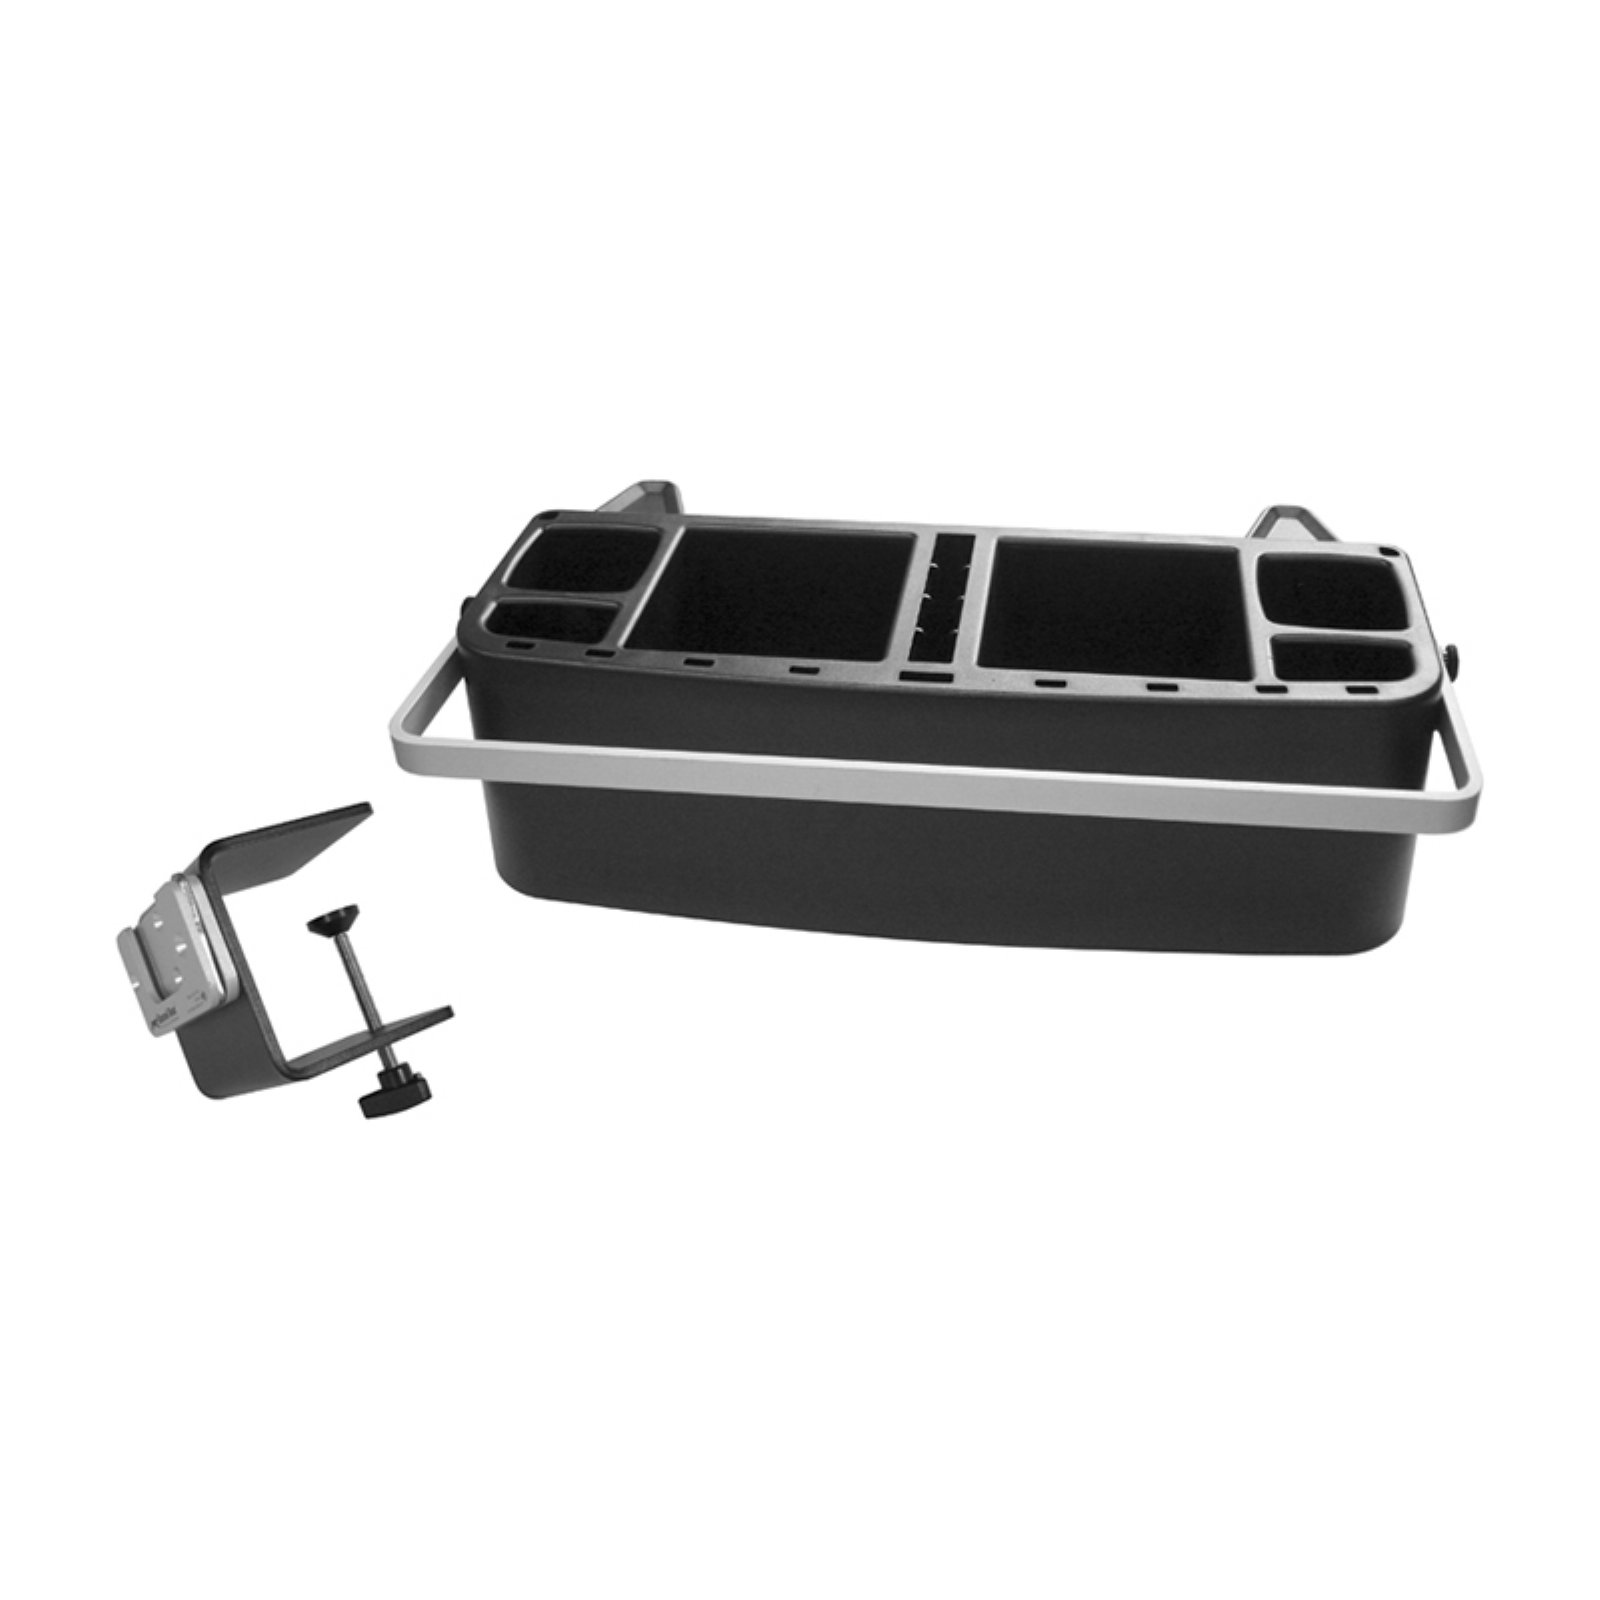 Kennel-Gear HD Ultra Supply Caddy with Handle Large Table Mount